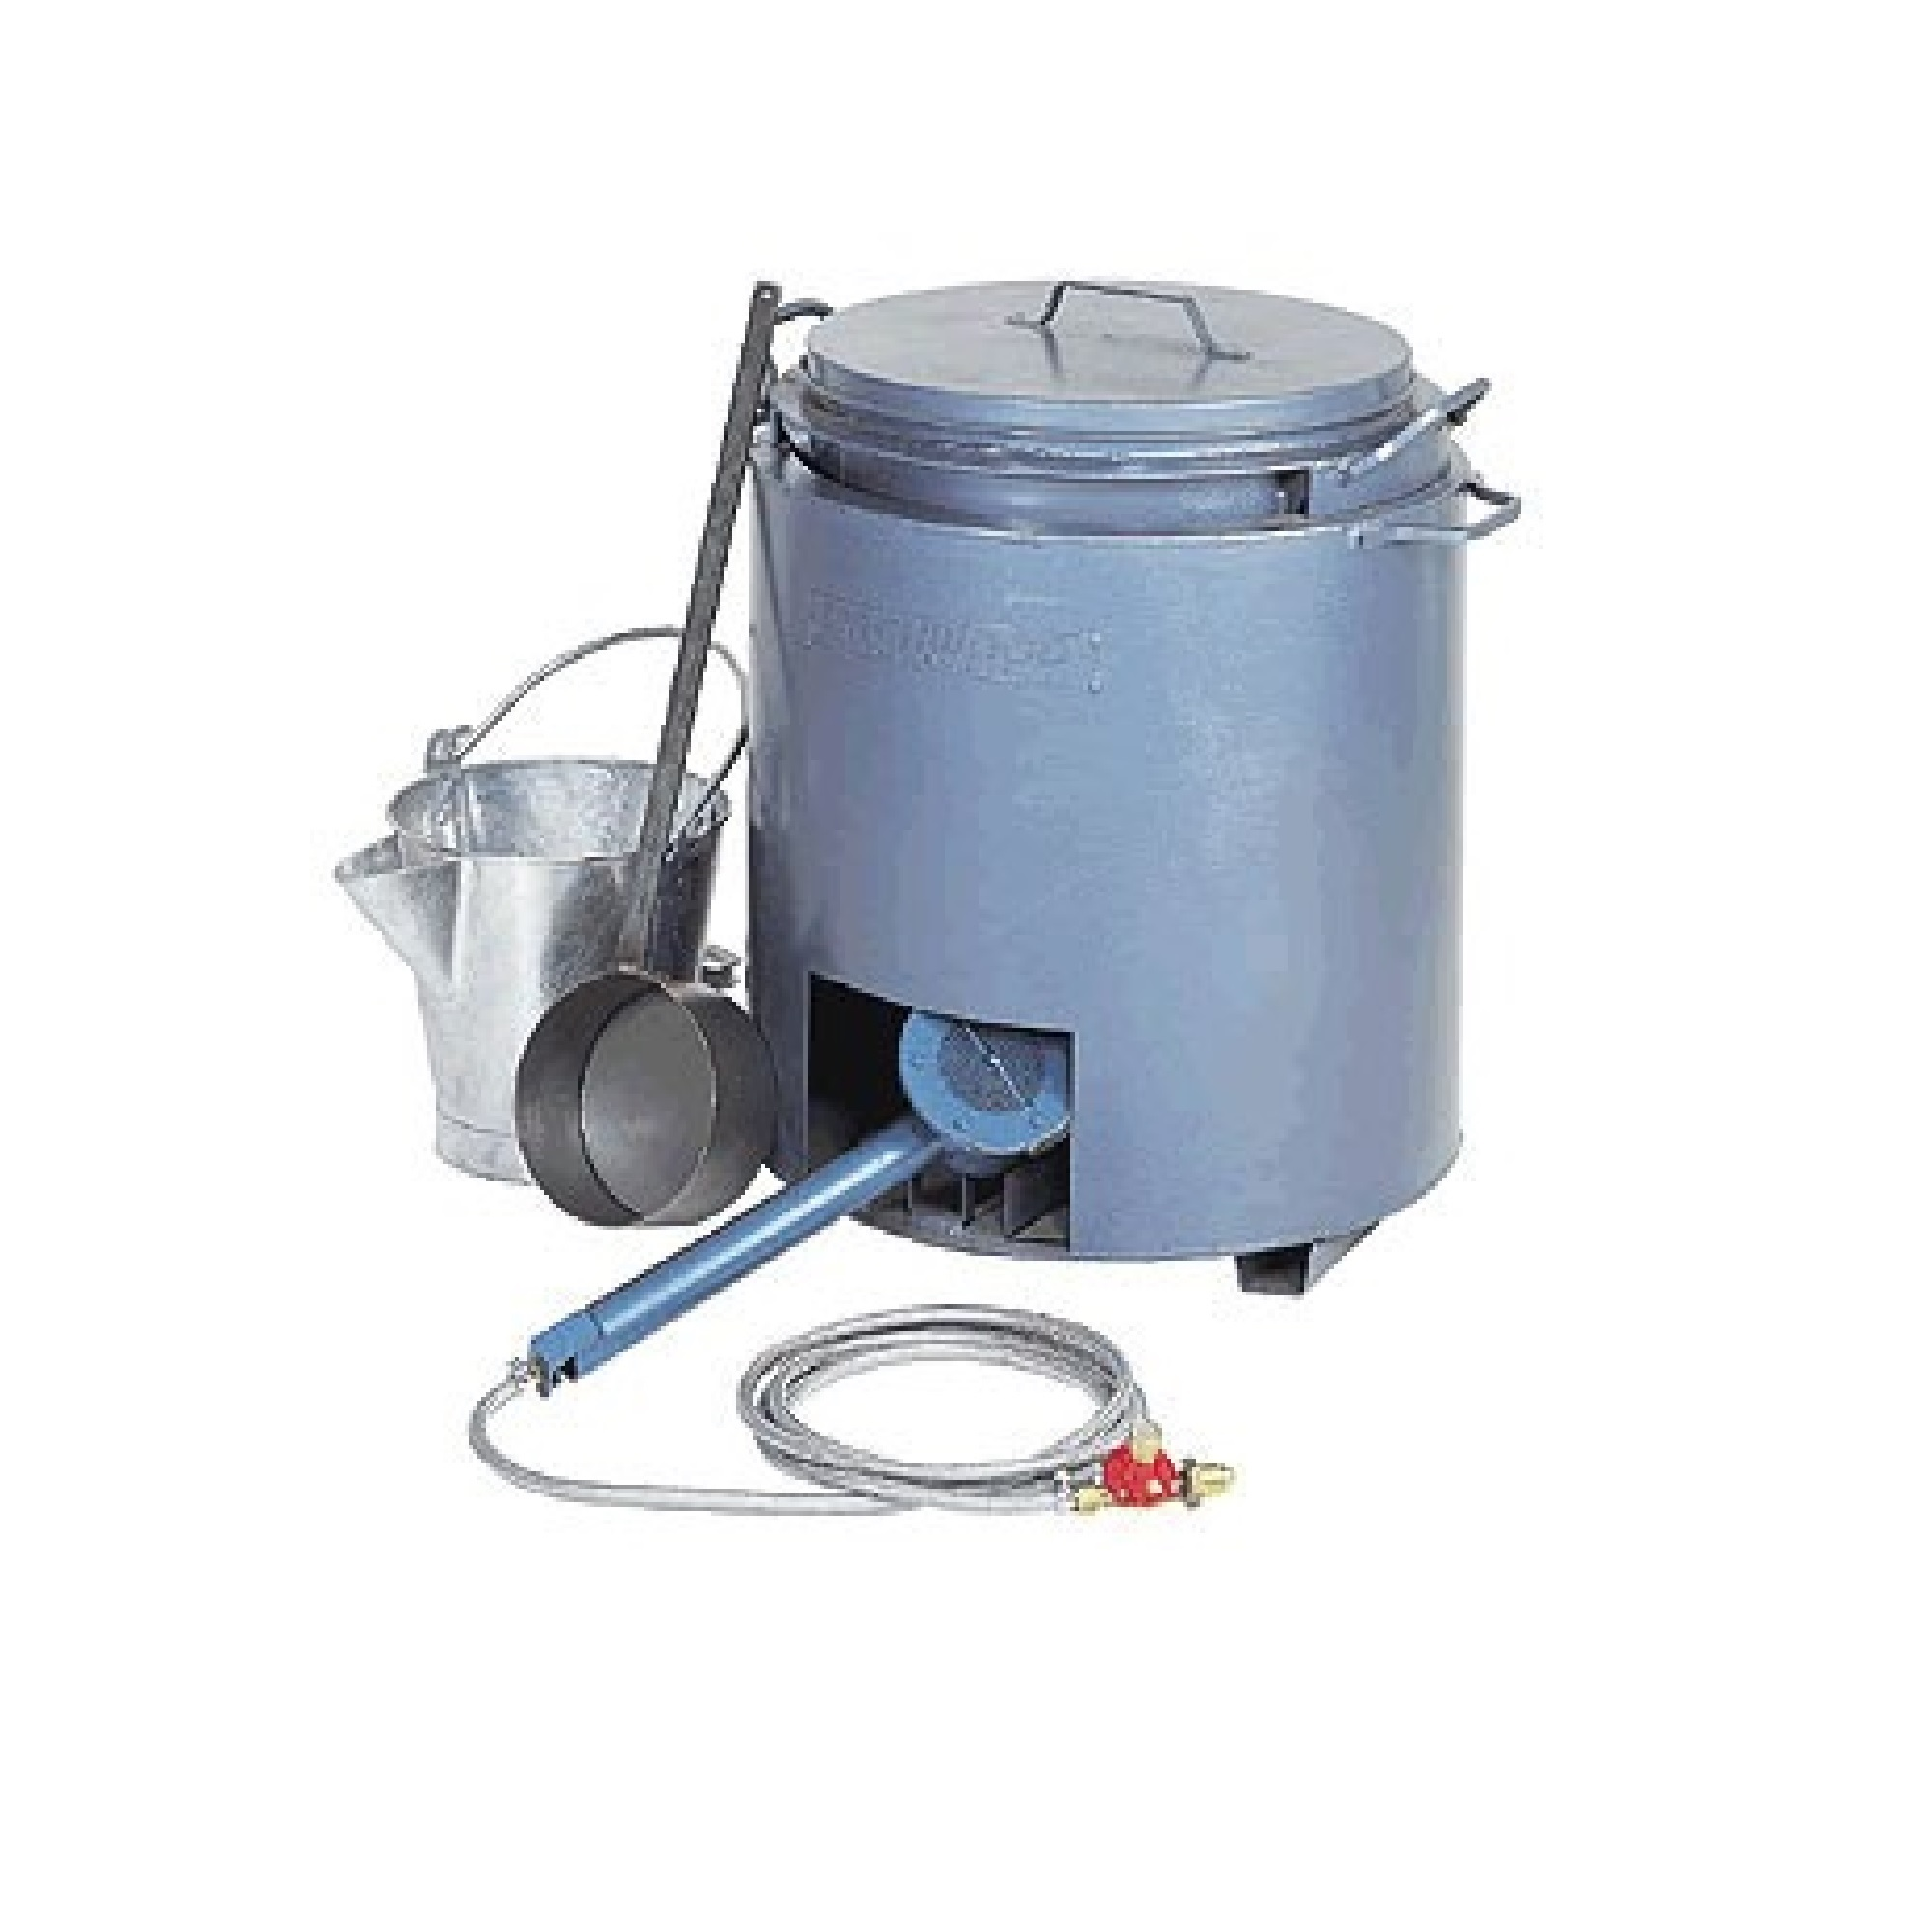 25 gallon tar boiler kit including tap, impact burner, regulator, armoured hose, long handle ladle and steel 'V' lip bucket